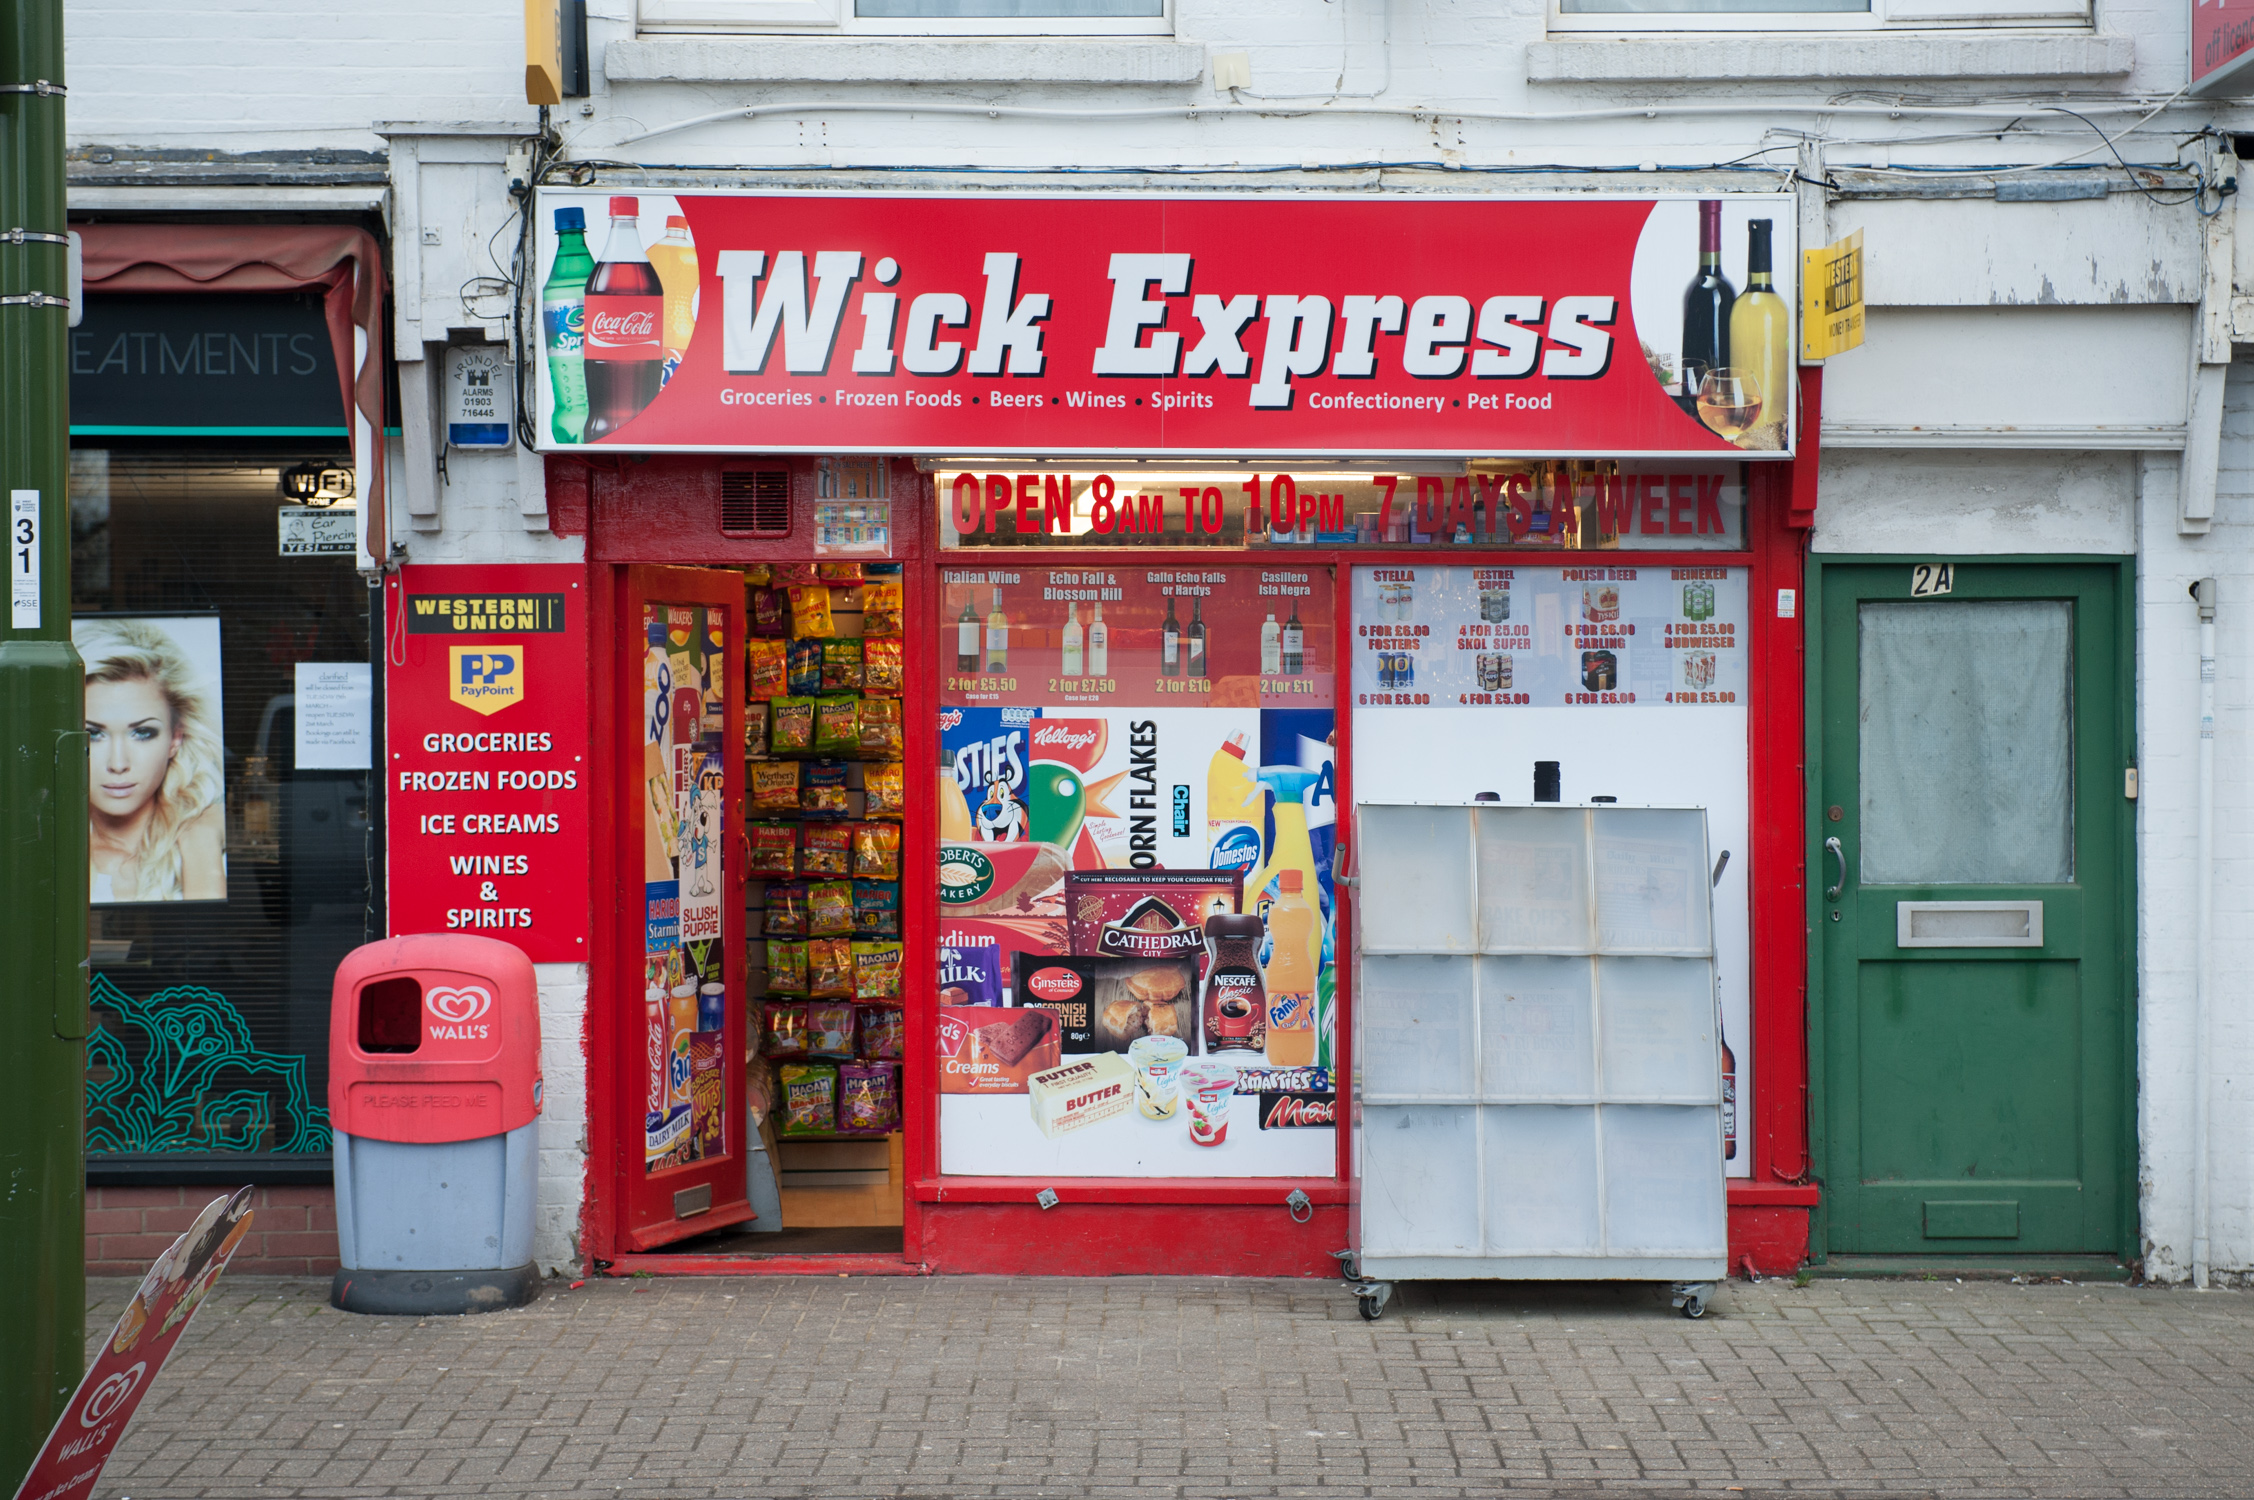 Wick Express